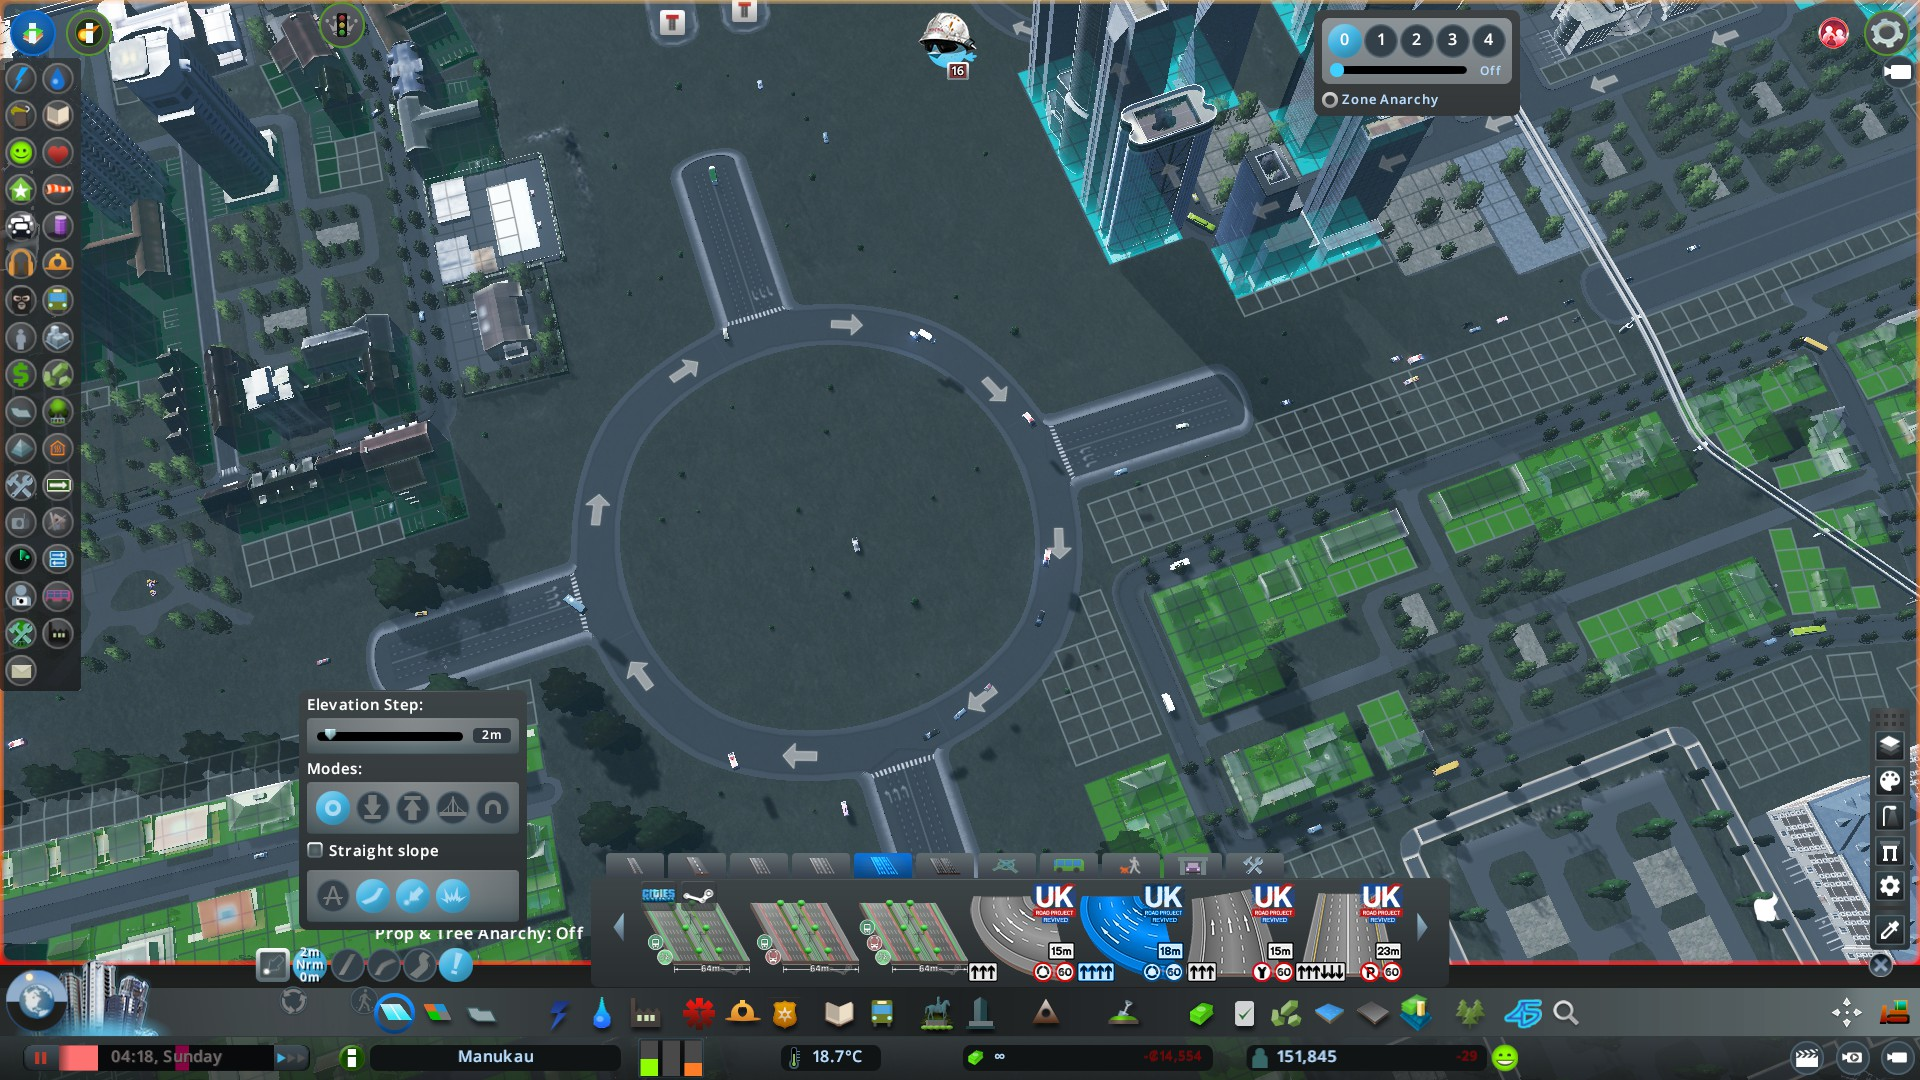 Introducing the Ben's #CitiesSkylines Stream. Follow Me as I use the Urban Simulator as a Communication Tool